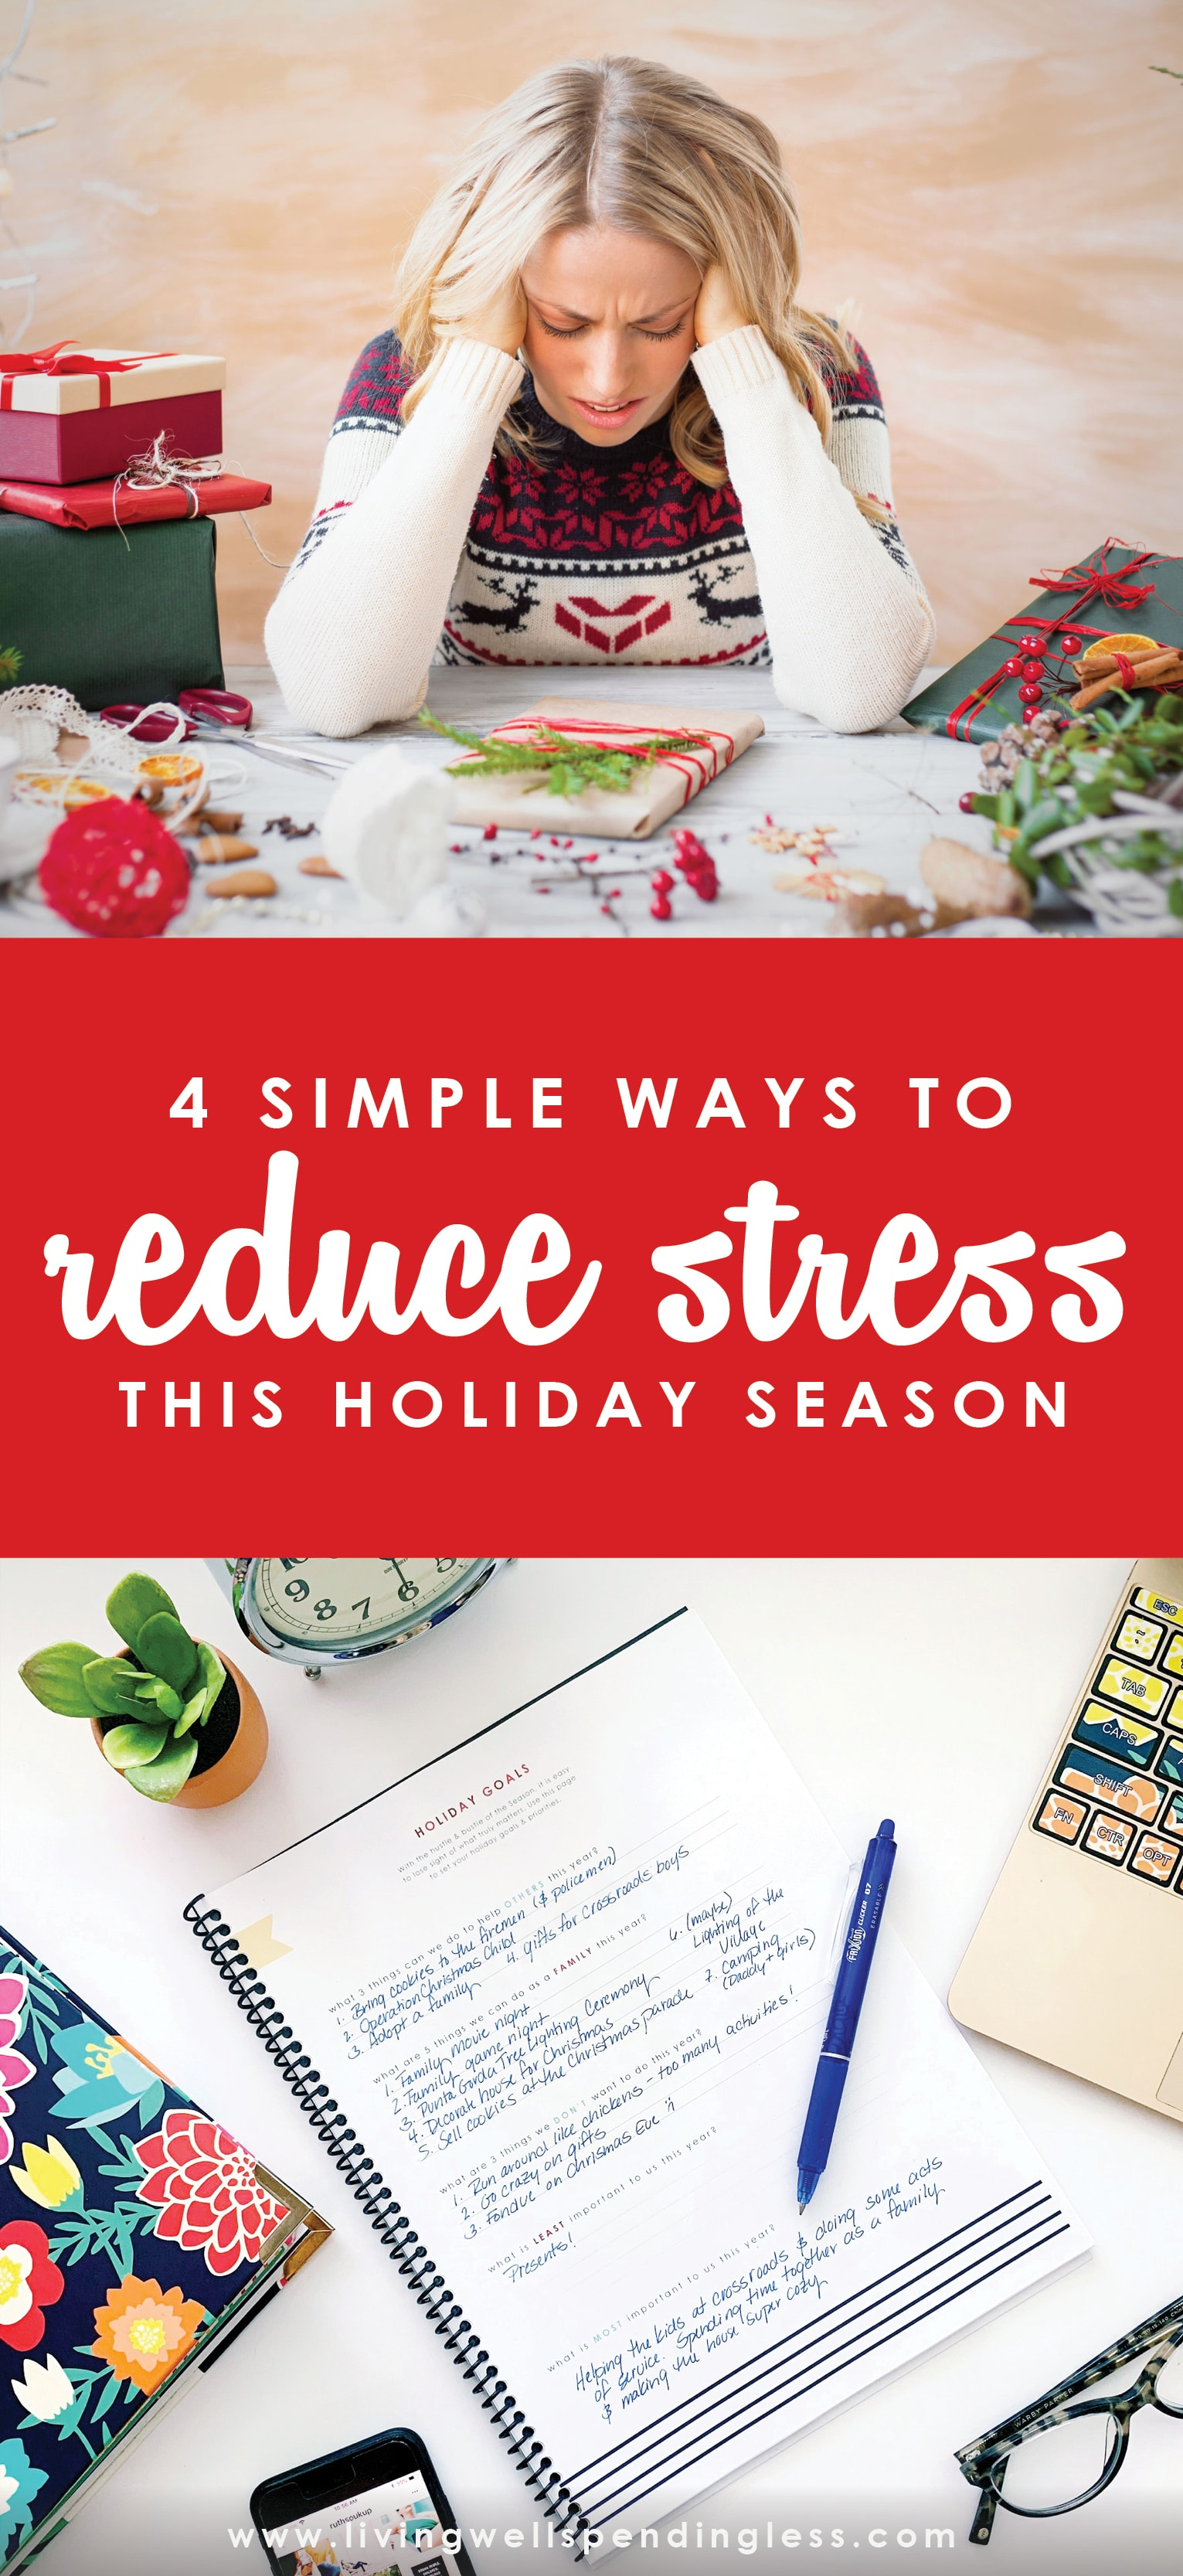 4 Simple Ways to Reduce Holiday Stress This Season | How to Reduce Holiday Stress